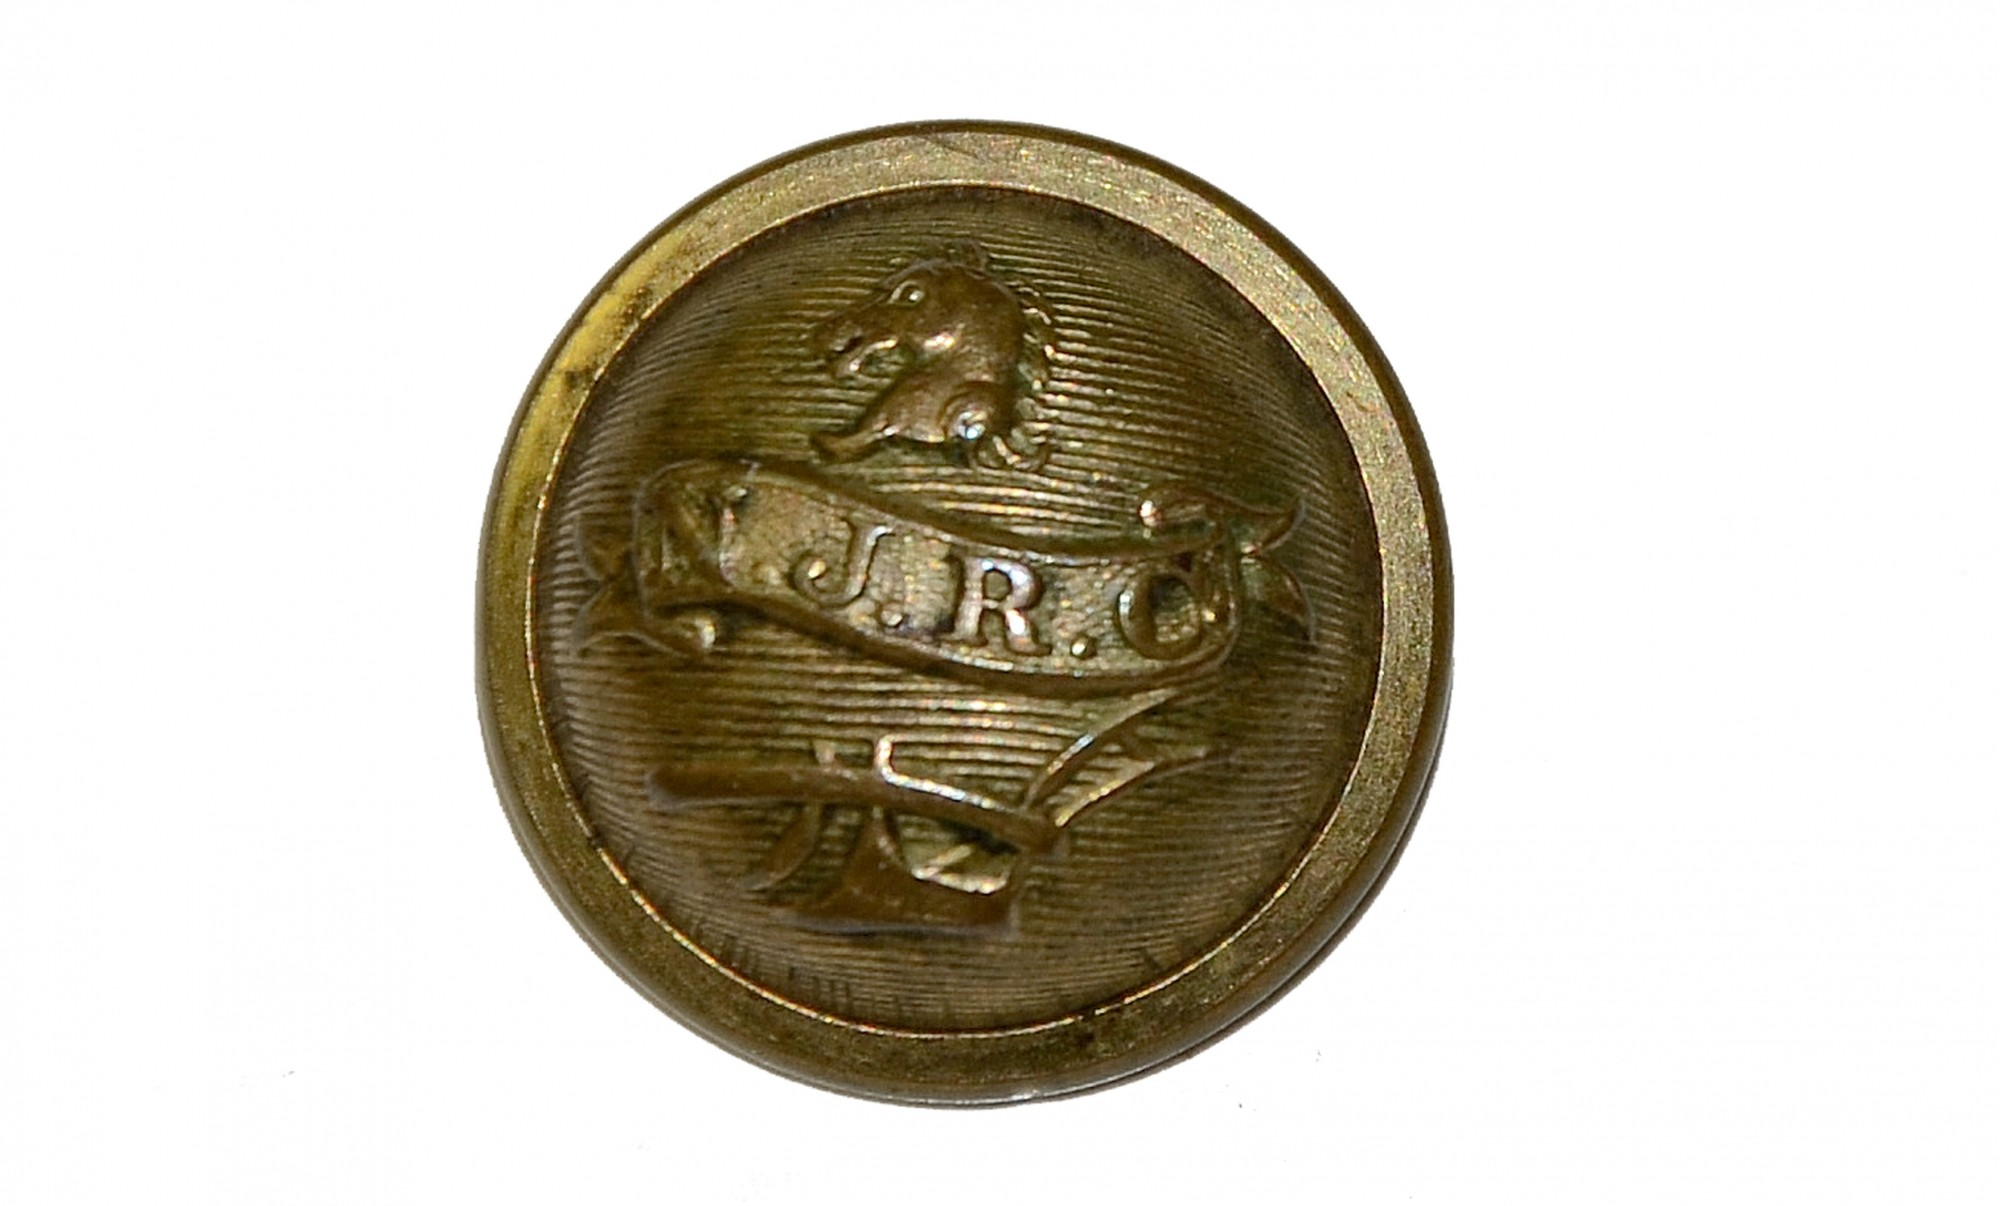 VERY NICE CONDITIONED NEW JERSEY RIFLE CORPS CUFF BUTTON